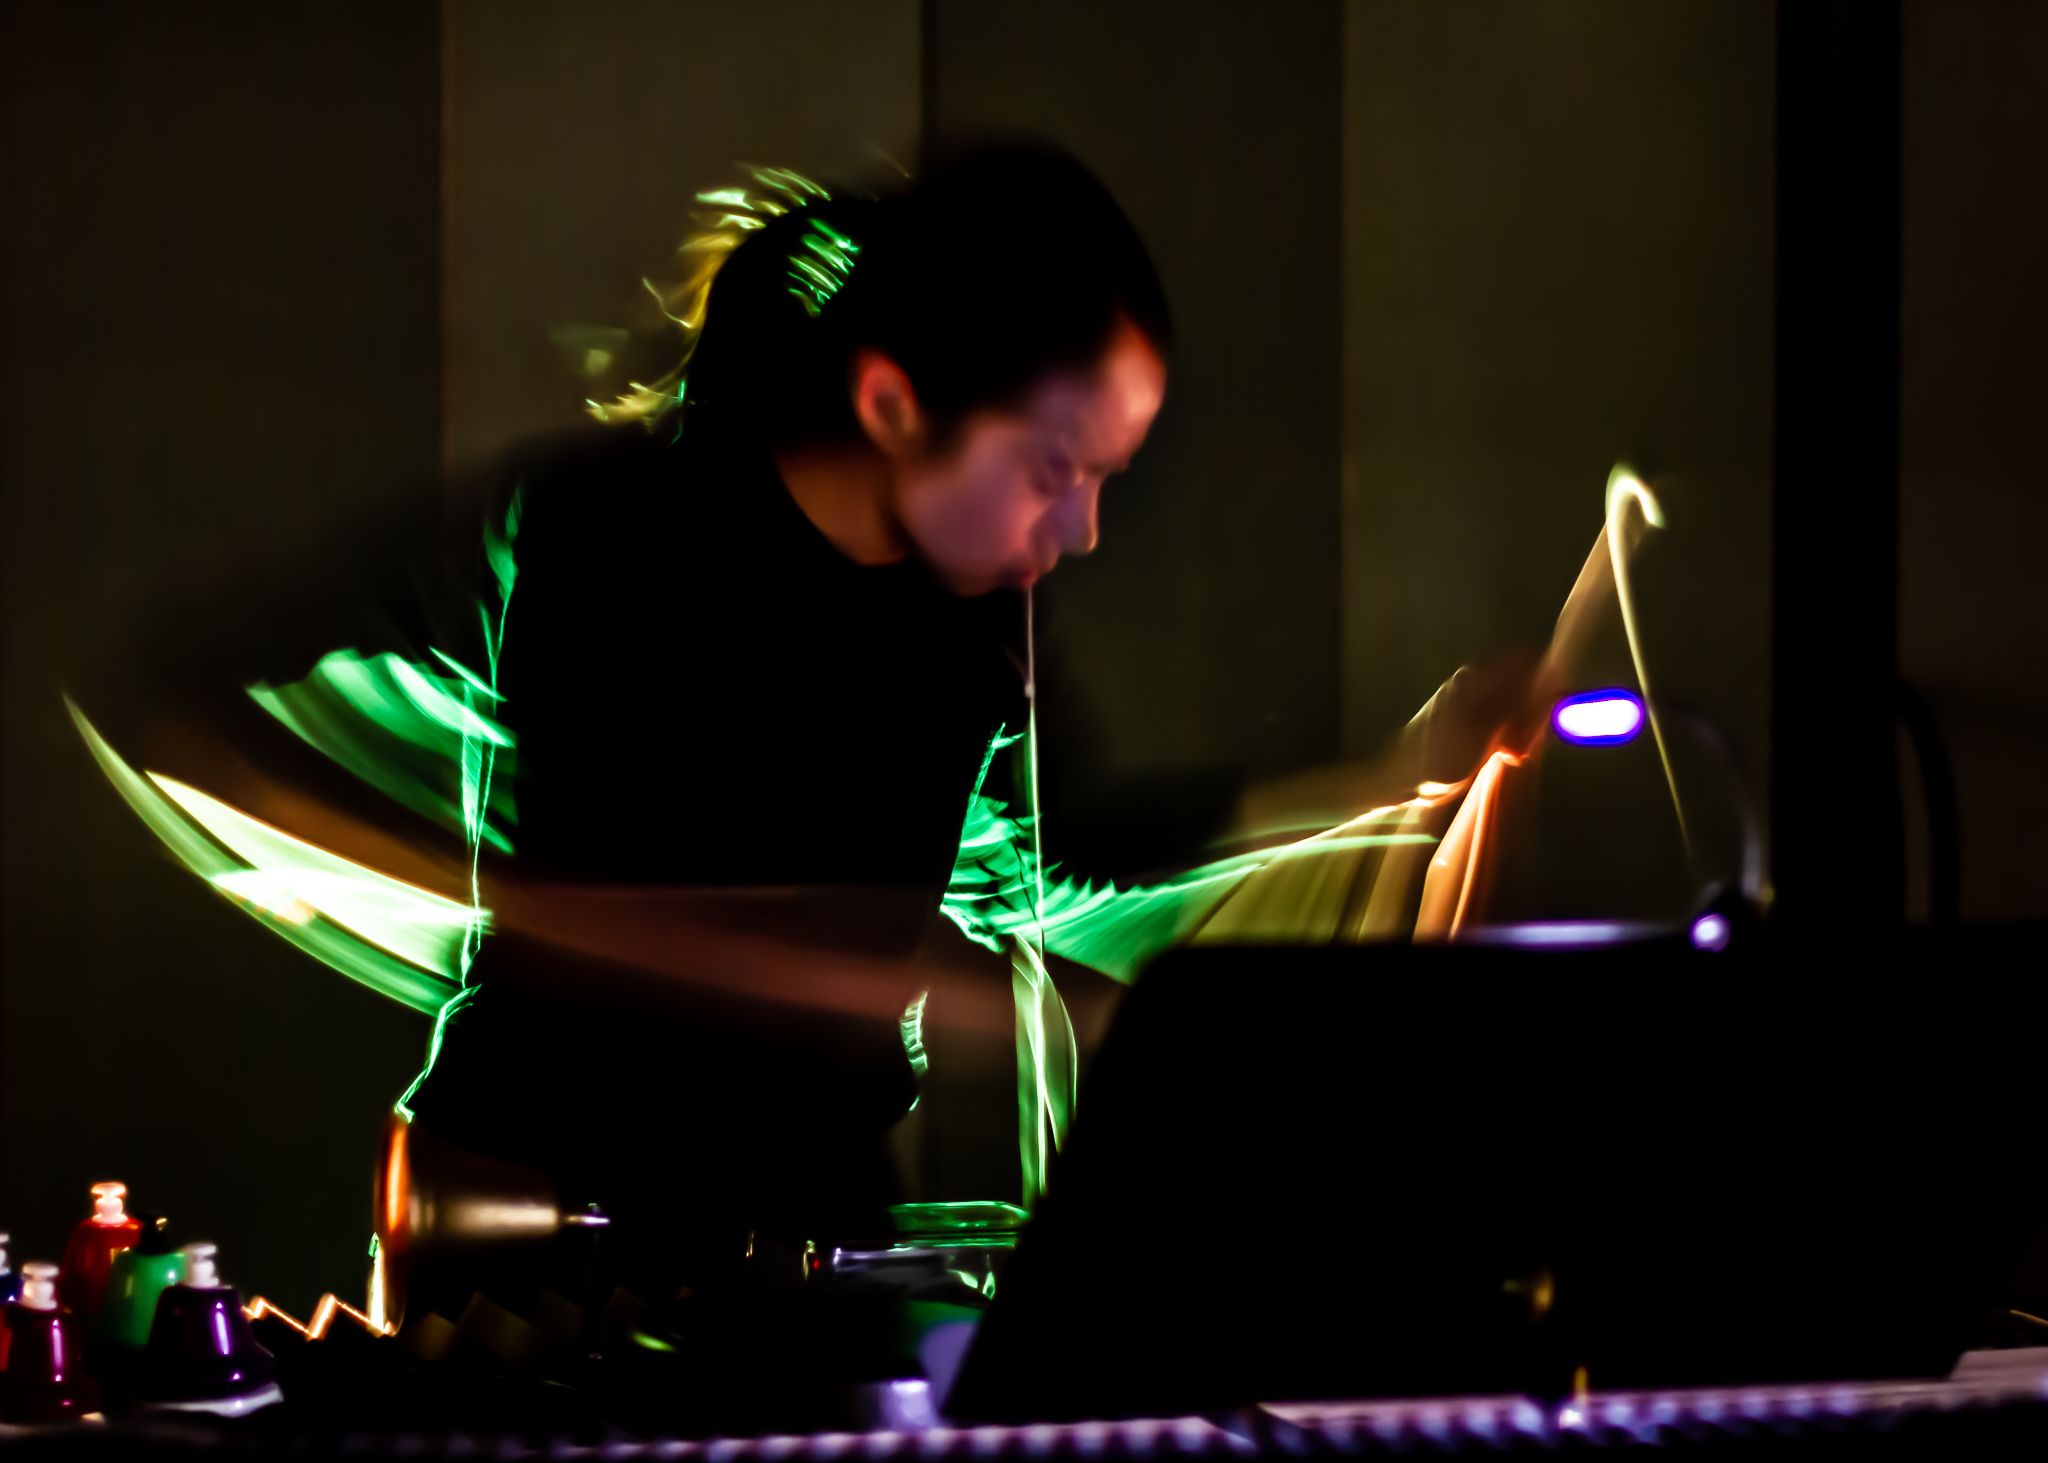 Percussionist Rebekah Ko is surrounded by swoops of light in an otherwise dark room.